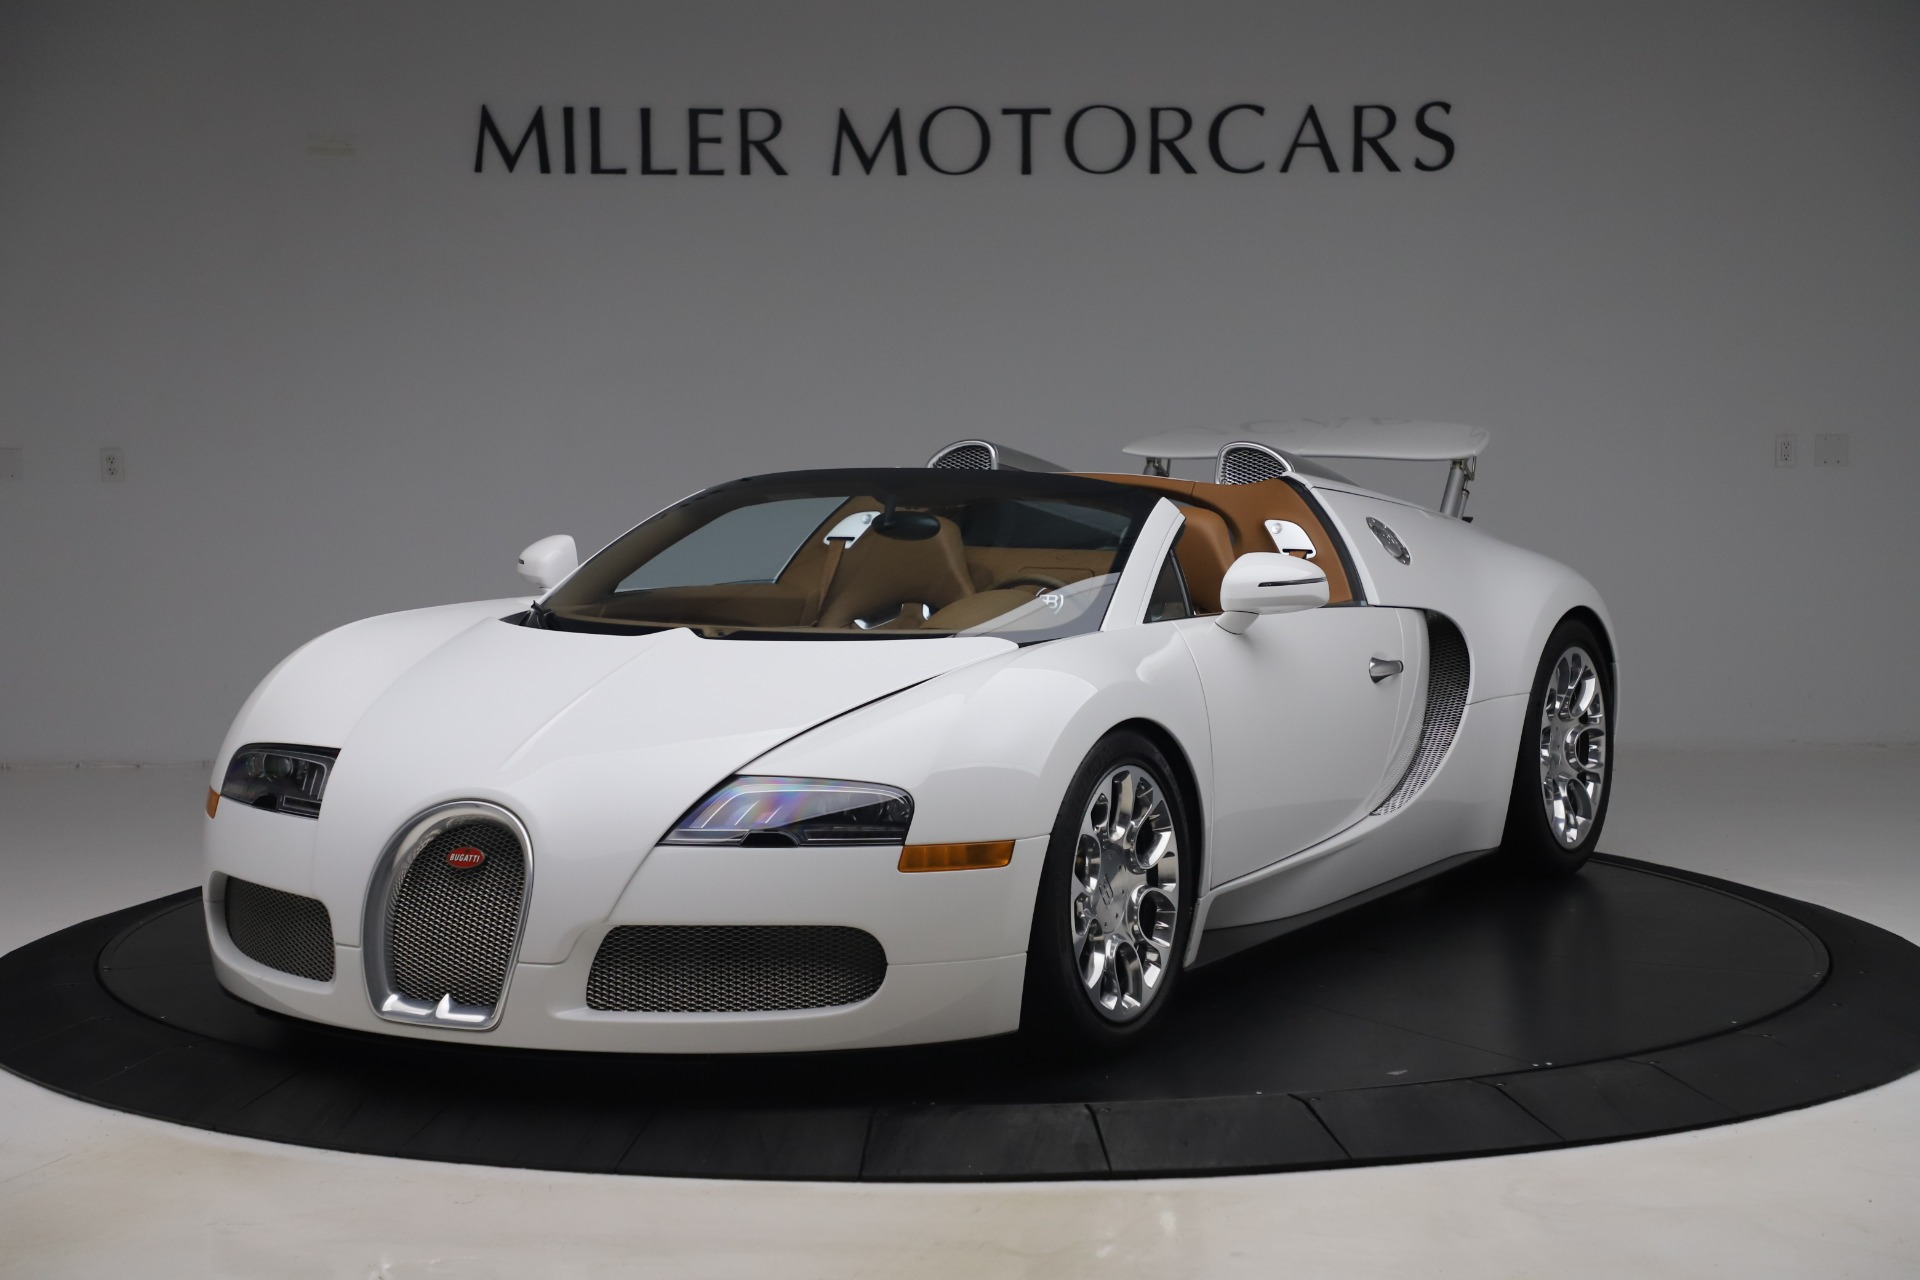 Used 2011 Bugatti Veyron 16.4 Grand Sport for sale Call for price at Bugatti of Greenwich in Greenwich CT 06830 1